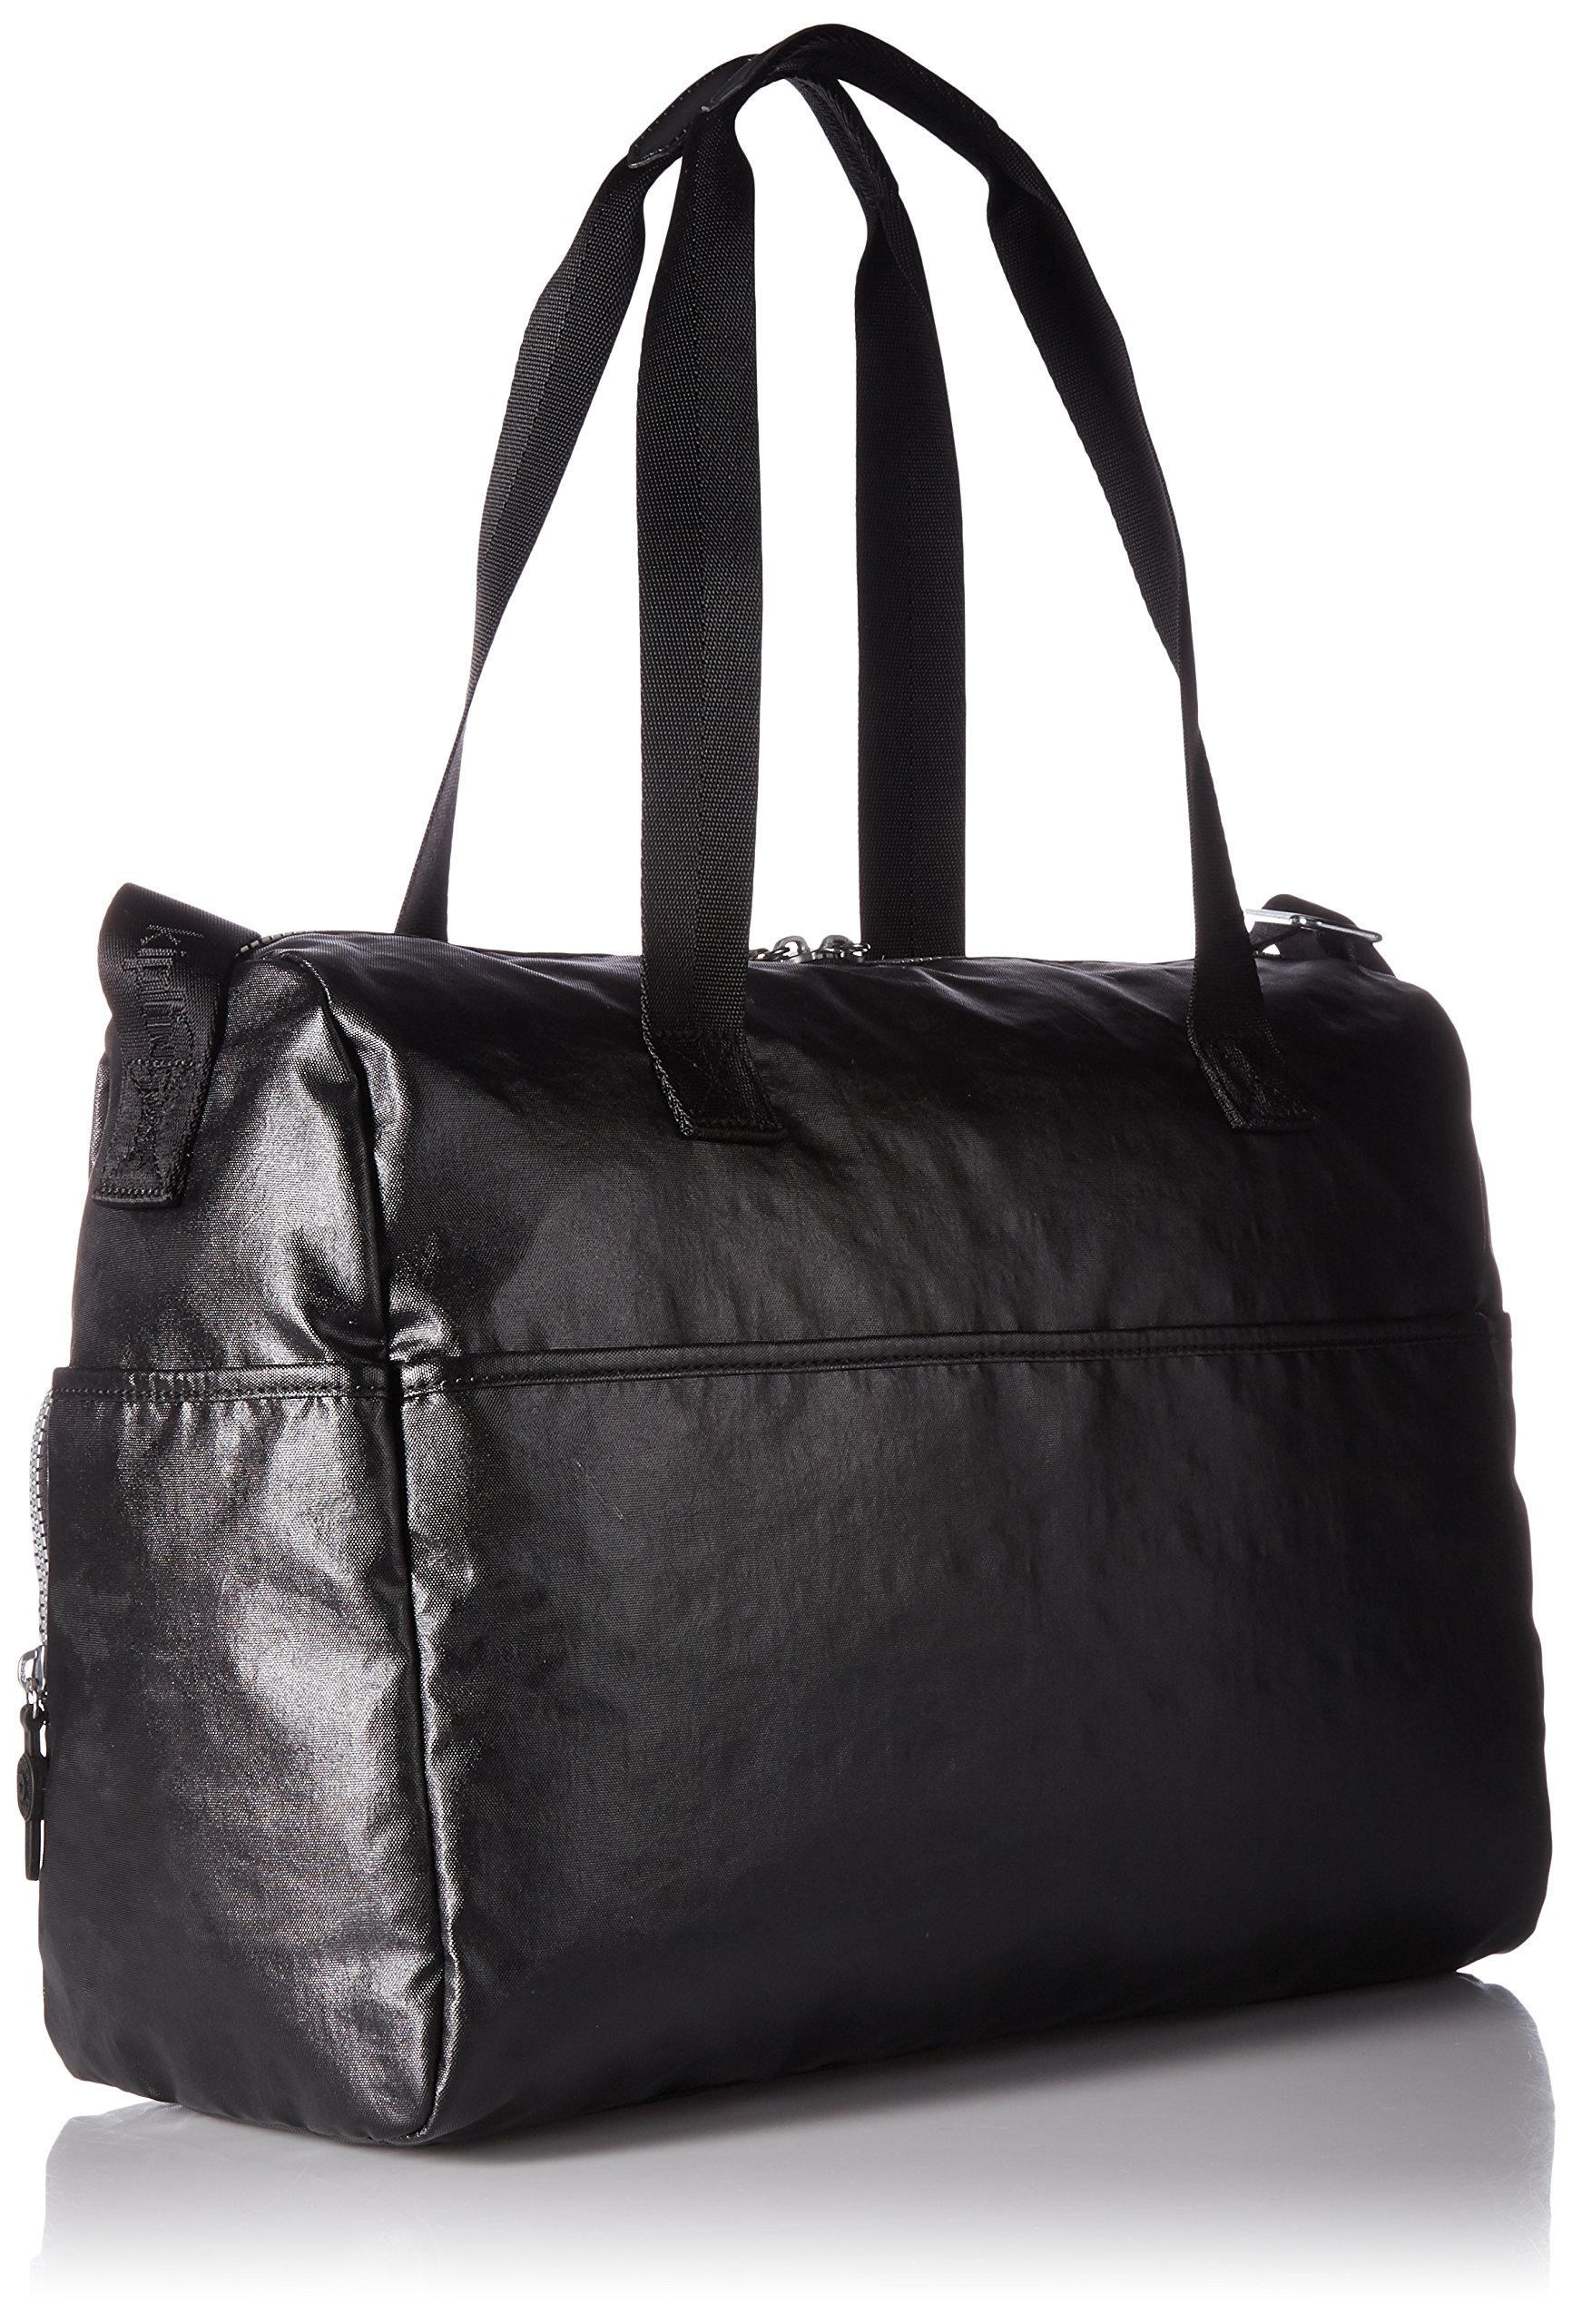 Kipling Stefany Lacquer Black Sport Tote, Lacqrblack by Kipling (Image #2)